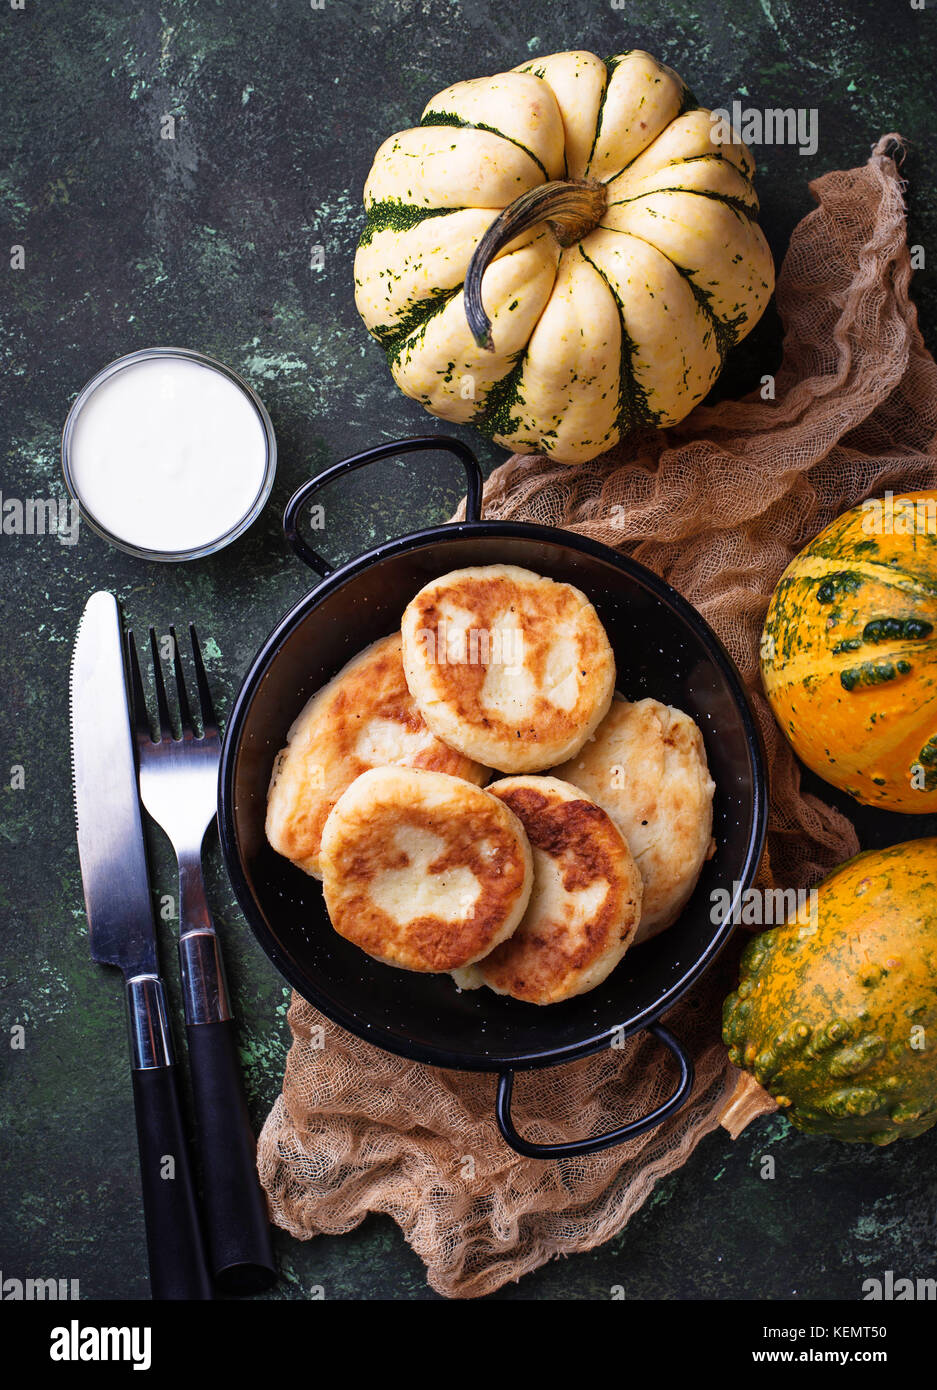 Delicious homemade pumpkins pancakes - Stock Image